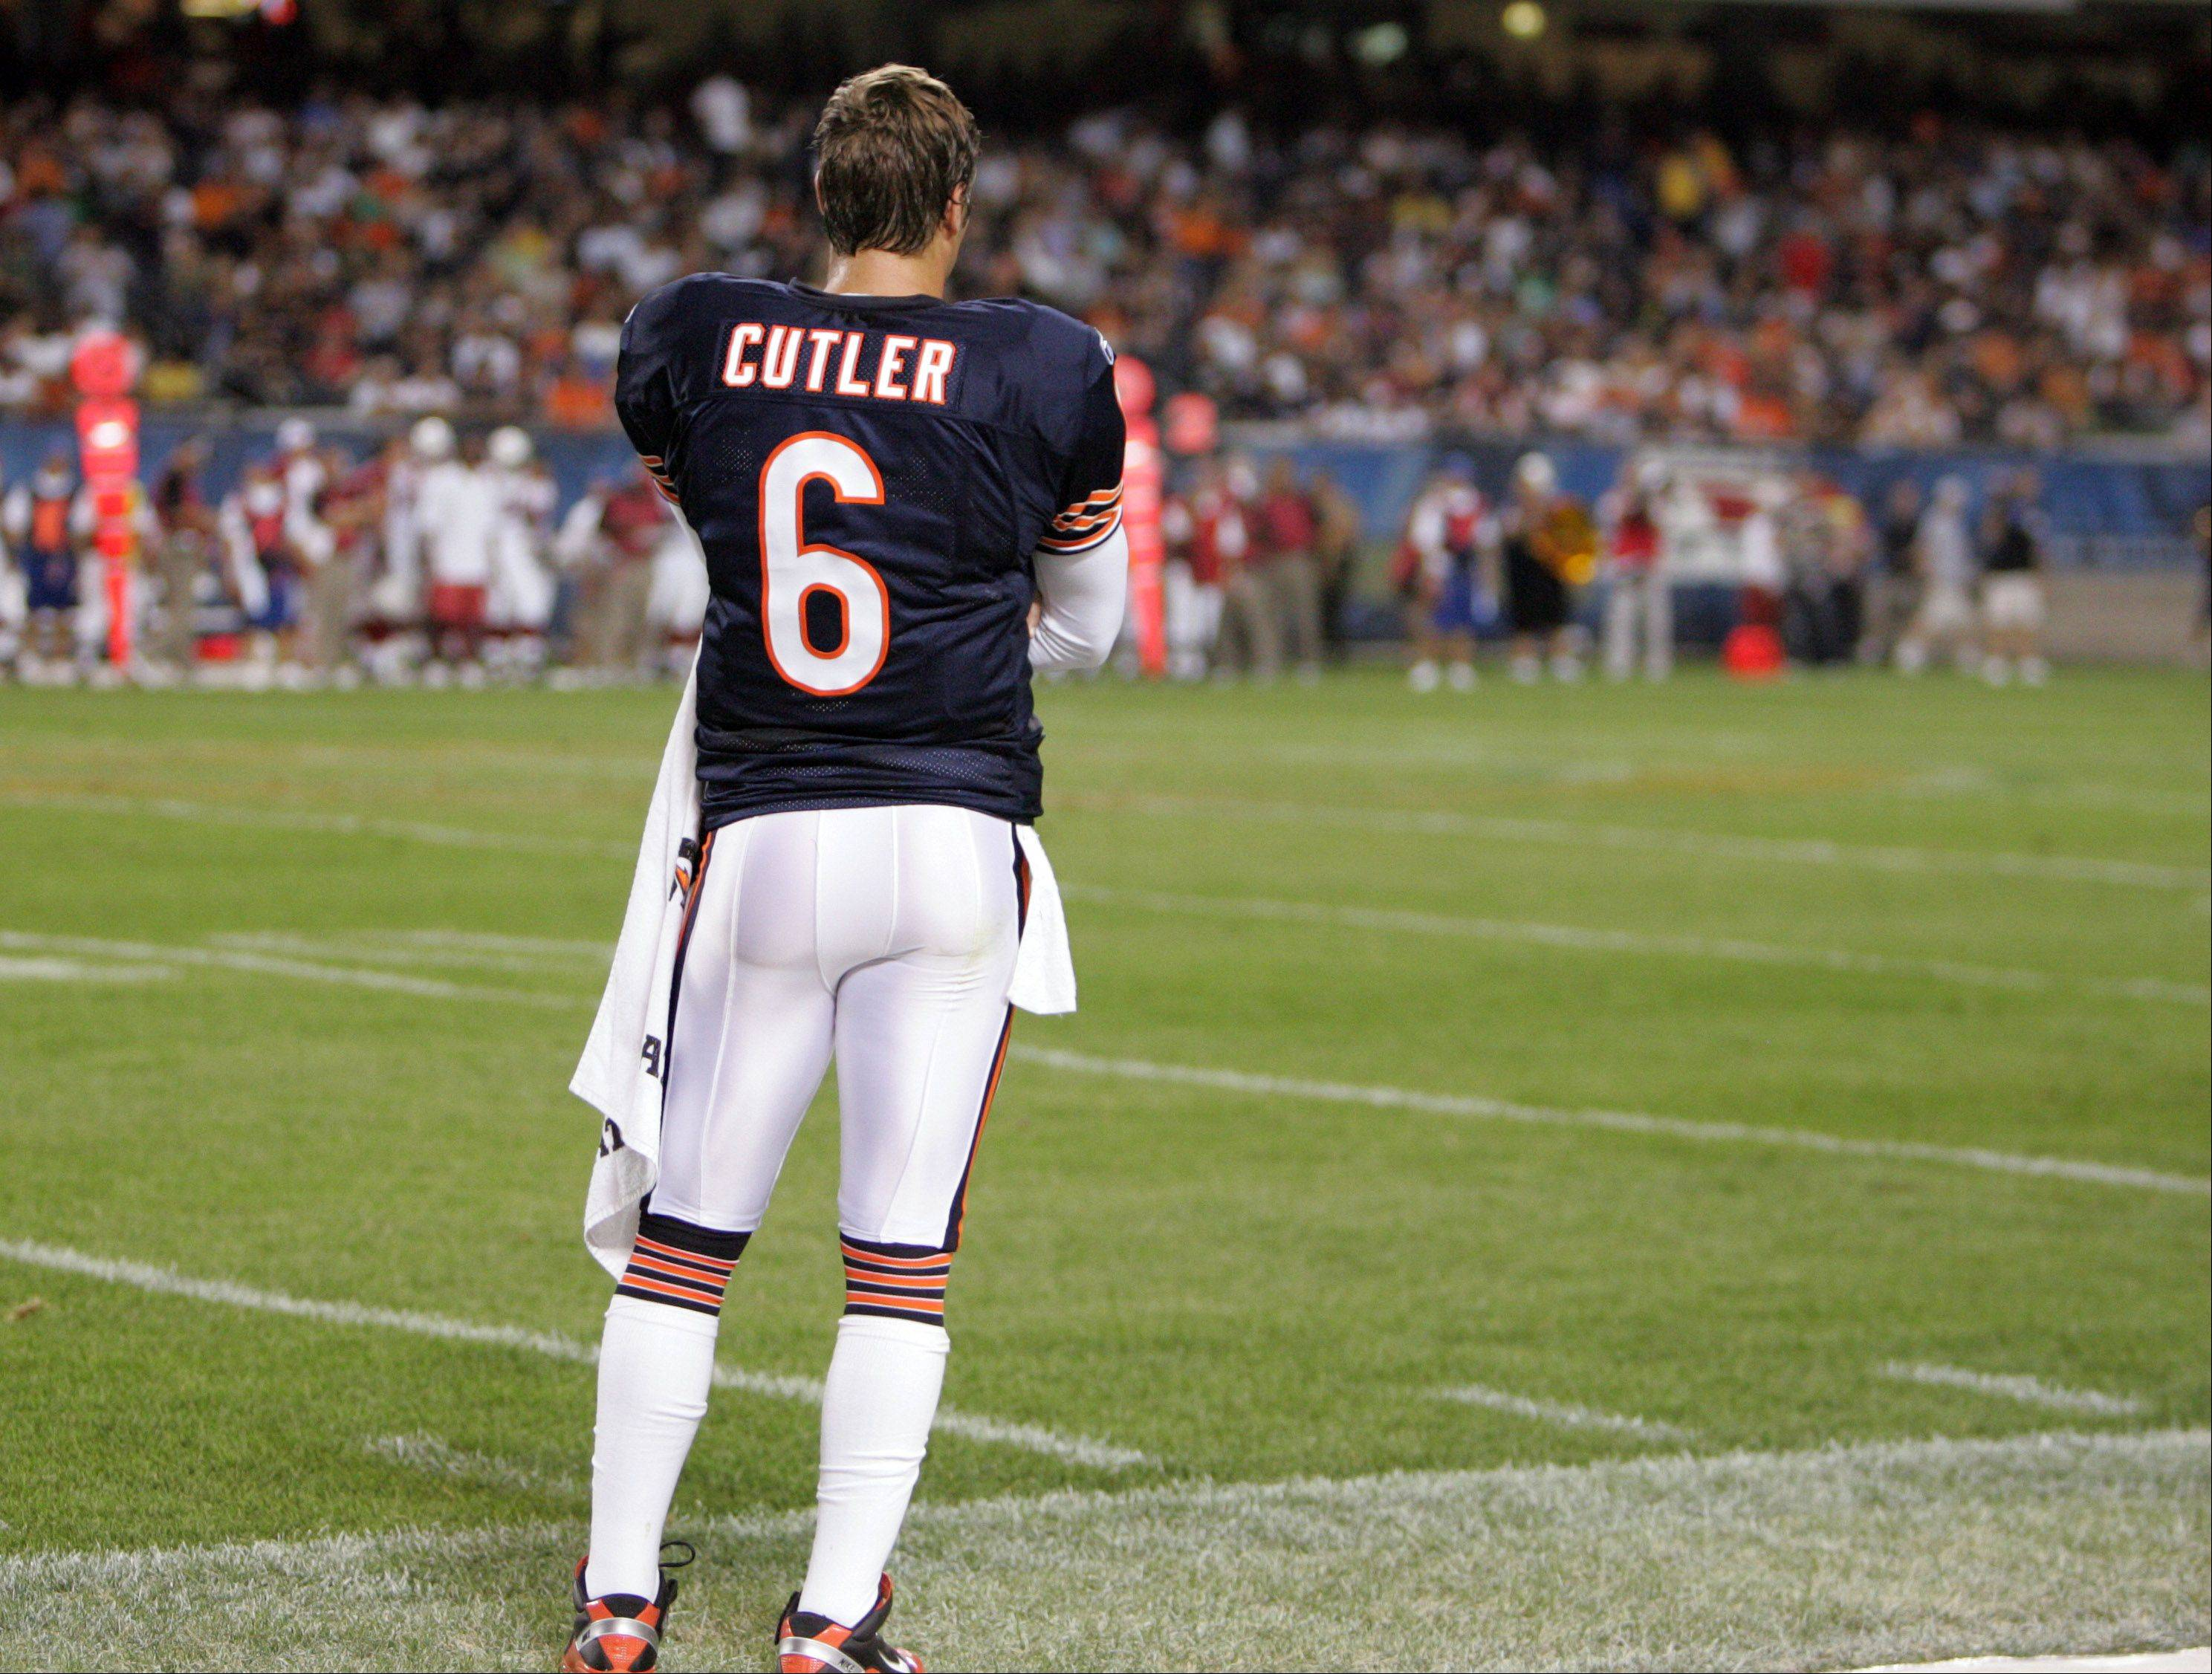 GEORGE LECLAIRE/gleclaire@dailyherald.com � Chicago Bears' Jay Cutler after coming out of the game against the Cardinals' on Saturday, August 28th at Soldier Field in Chicago.